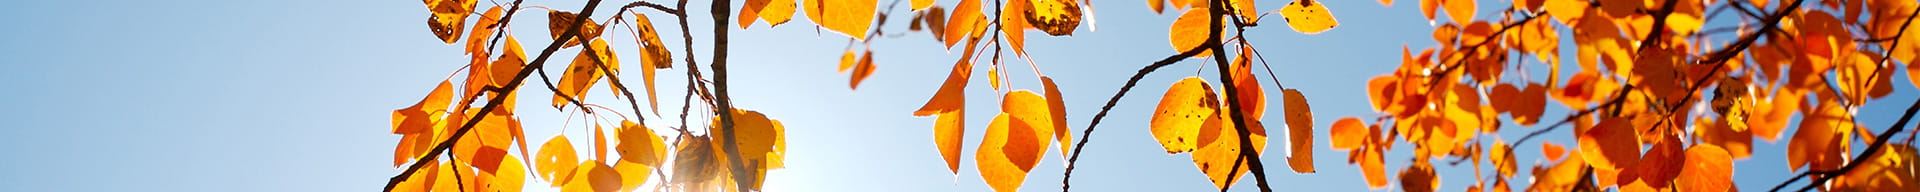 tree-branch-with-yellow-leaves